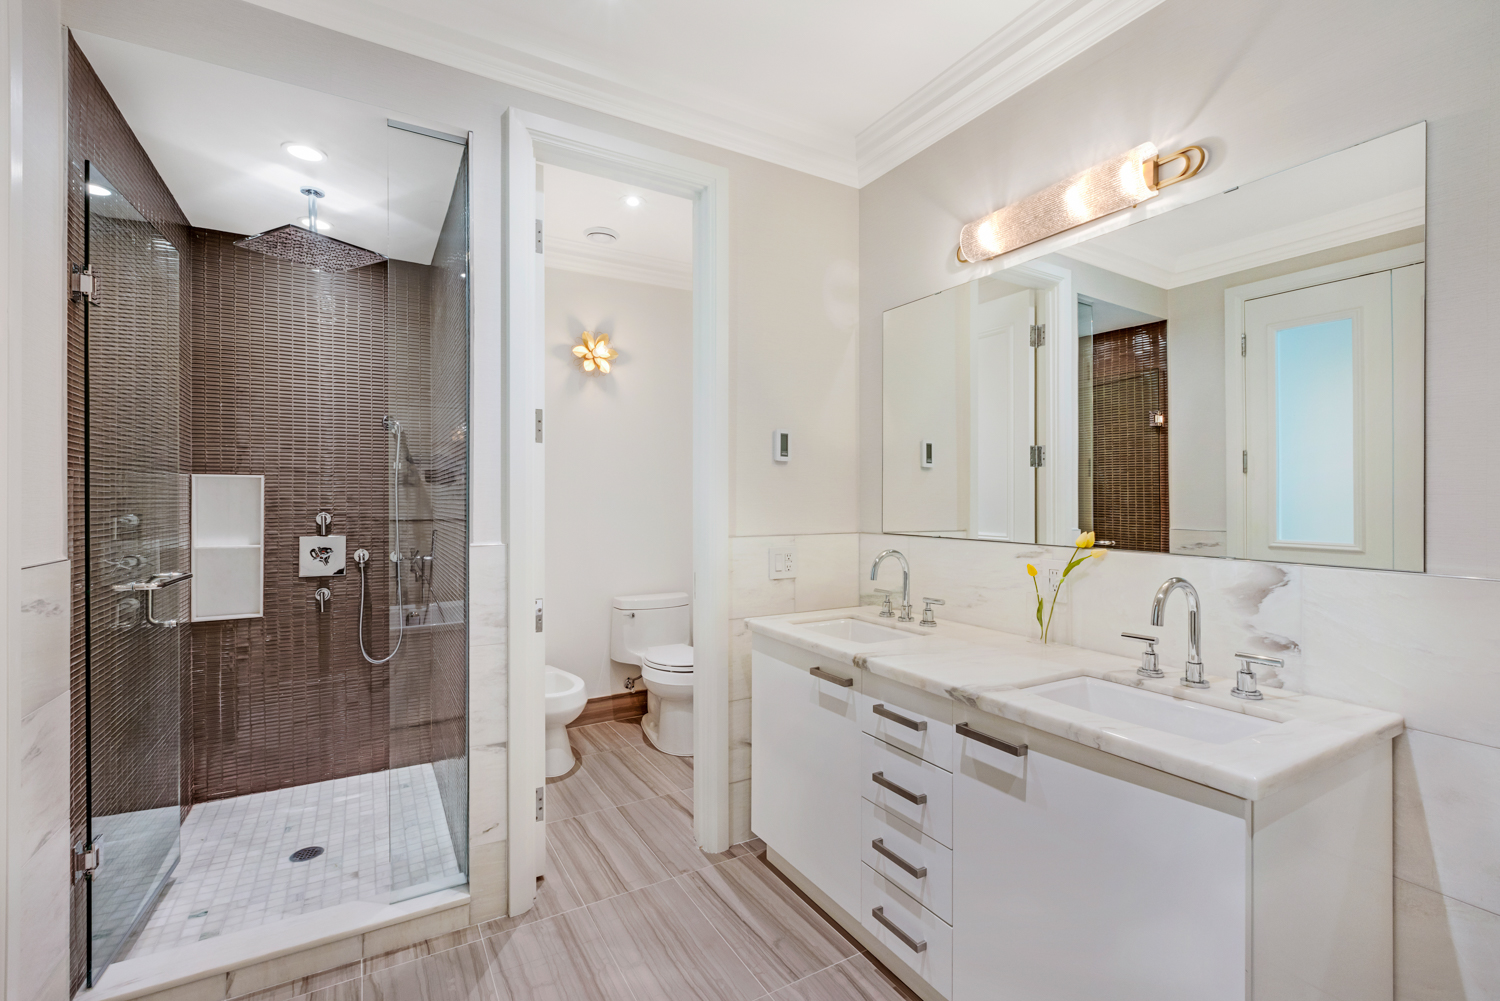 St. Regis Suite 3405 Master Bathroom.jpg